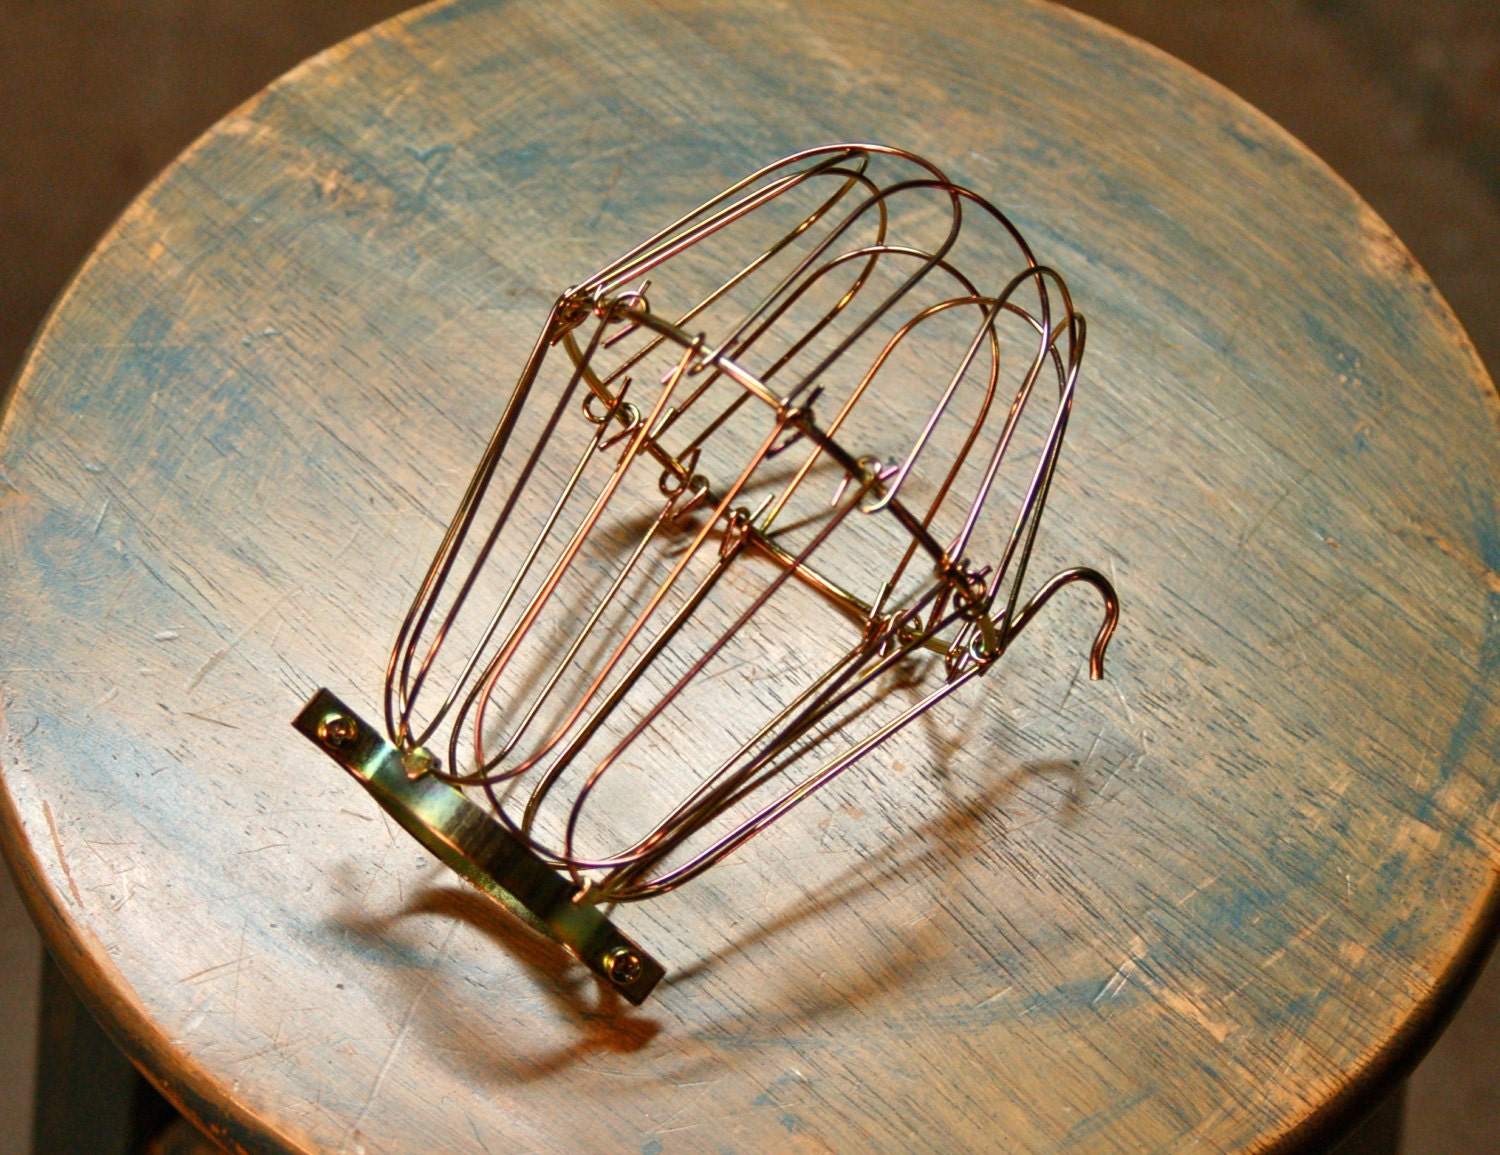 Brass Wire Bulb Cage Clamp On Lamp Guard For Vintage Trouble